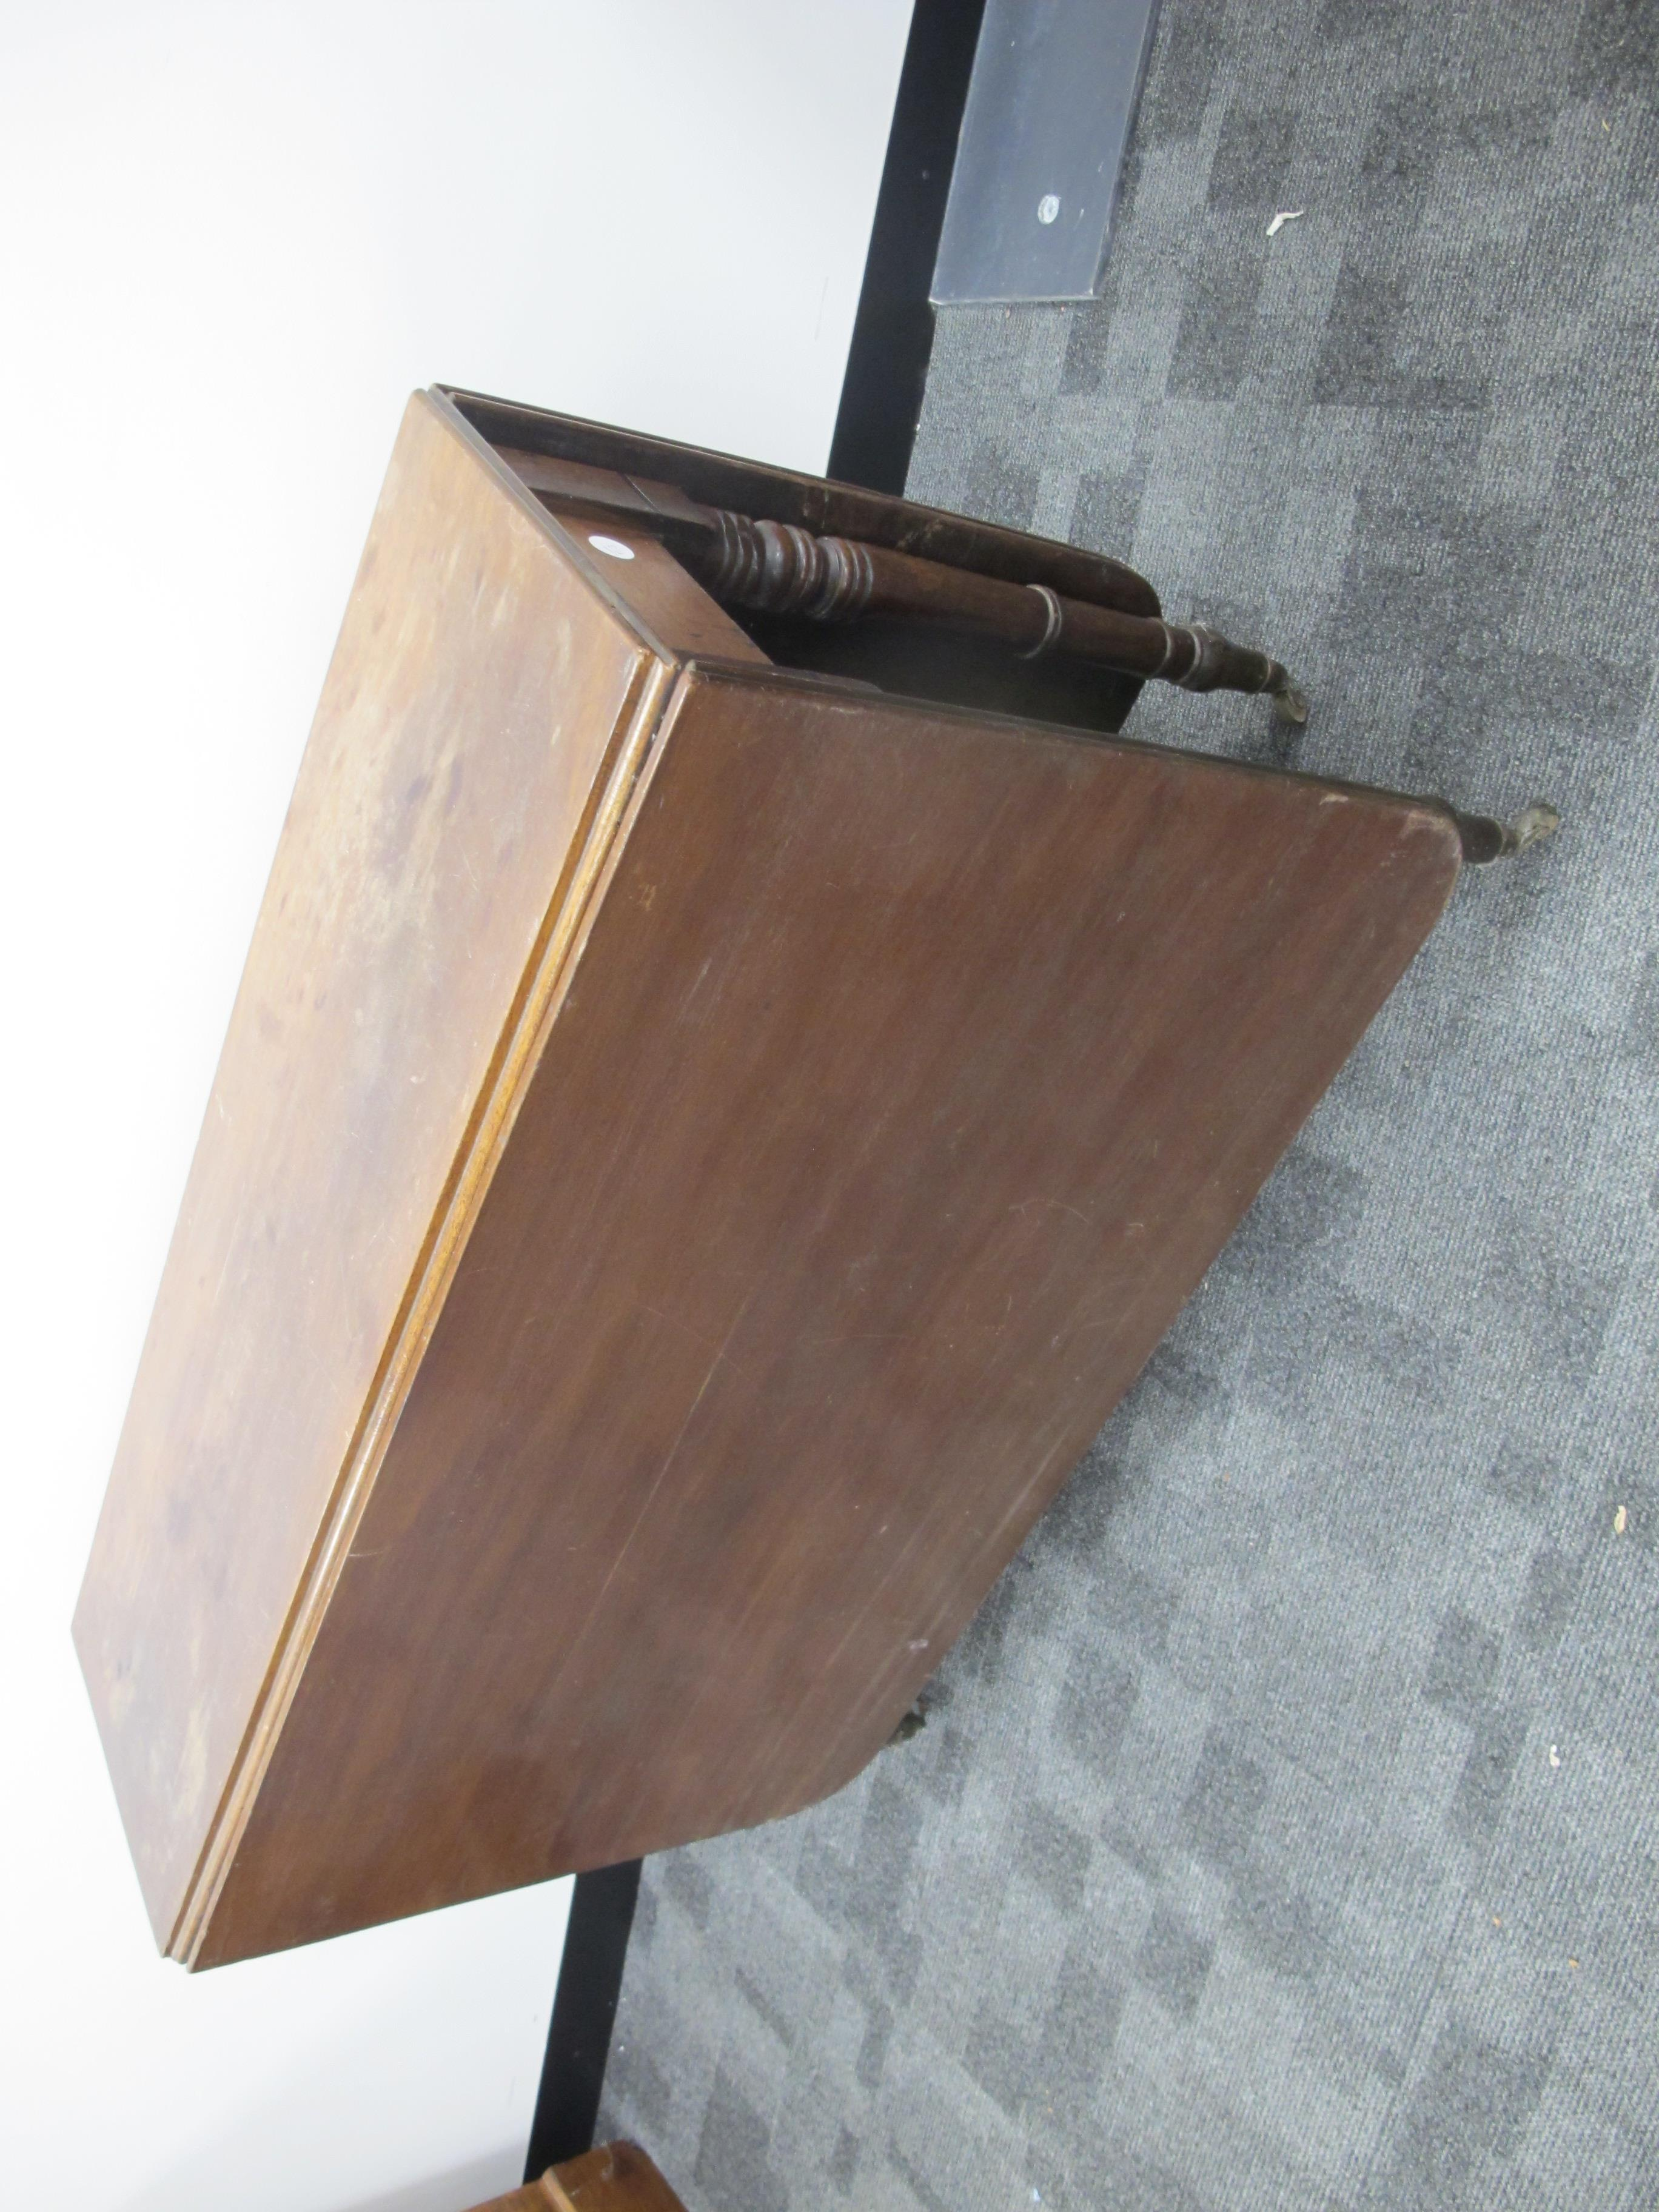 Lot 447 - An antique mahogany drop flap table, rounded corners, raised on turned supports, finished on brass